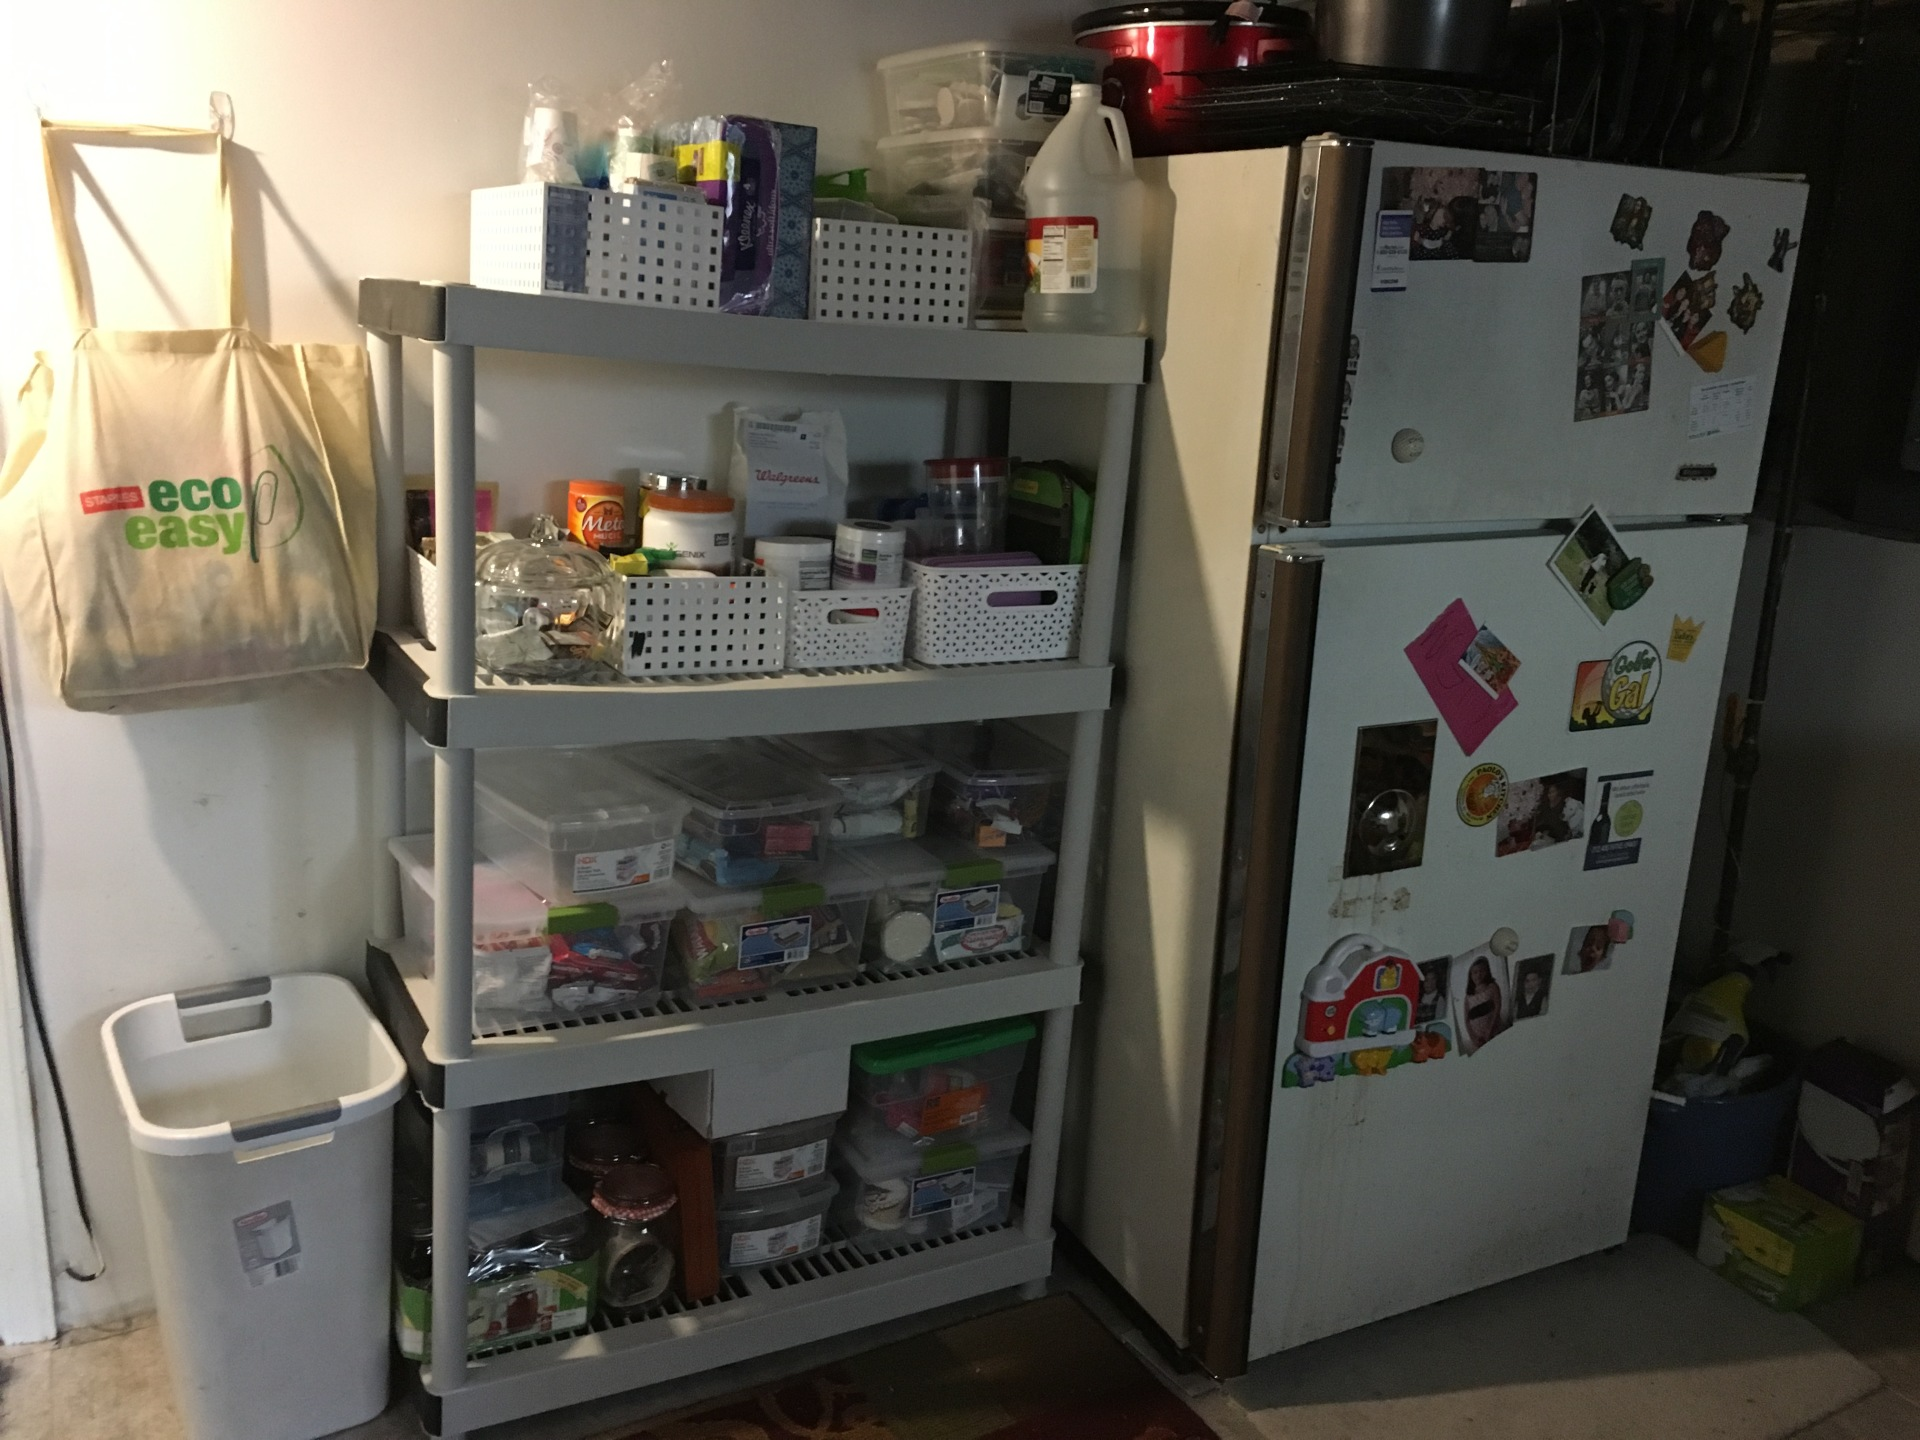 Now it's an extension of her pantry.